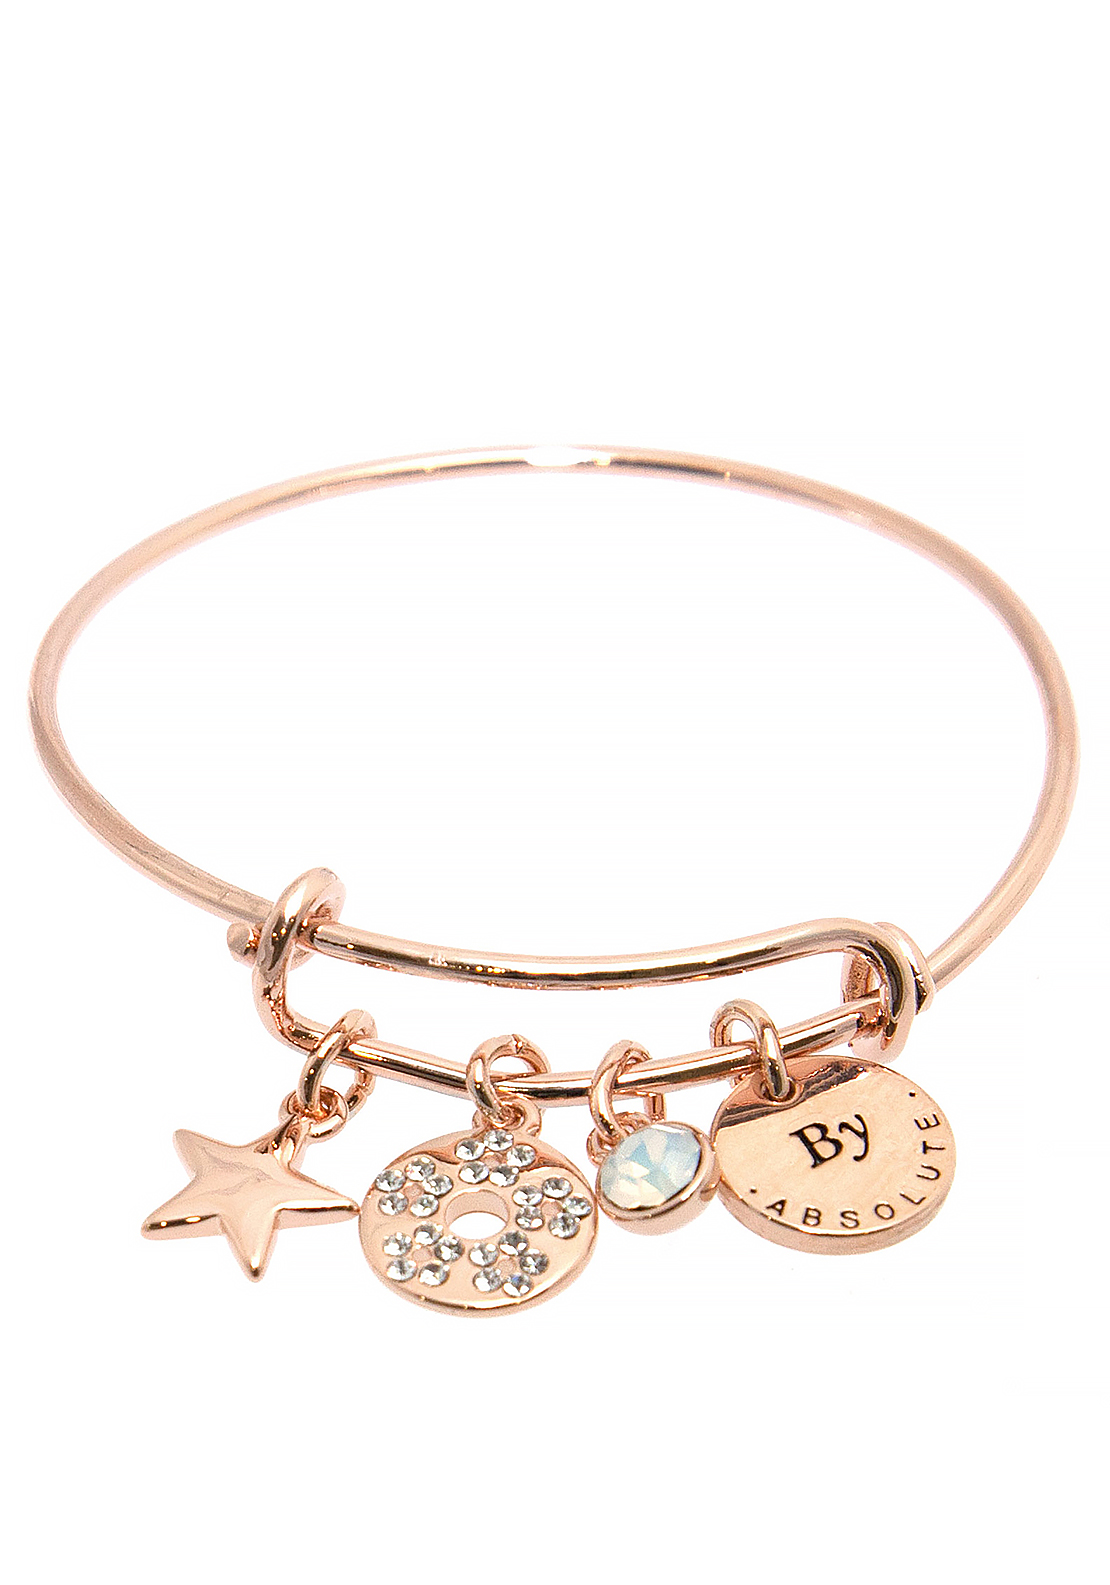 Absolute Jewellery Girls March Charm Bangle, Rose Gold